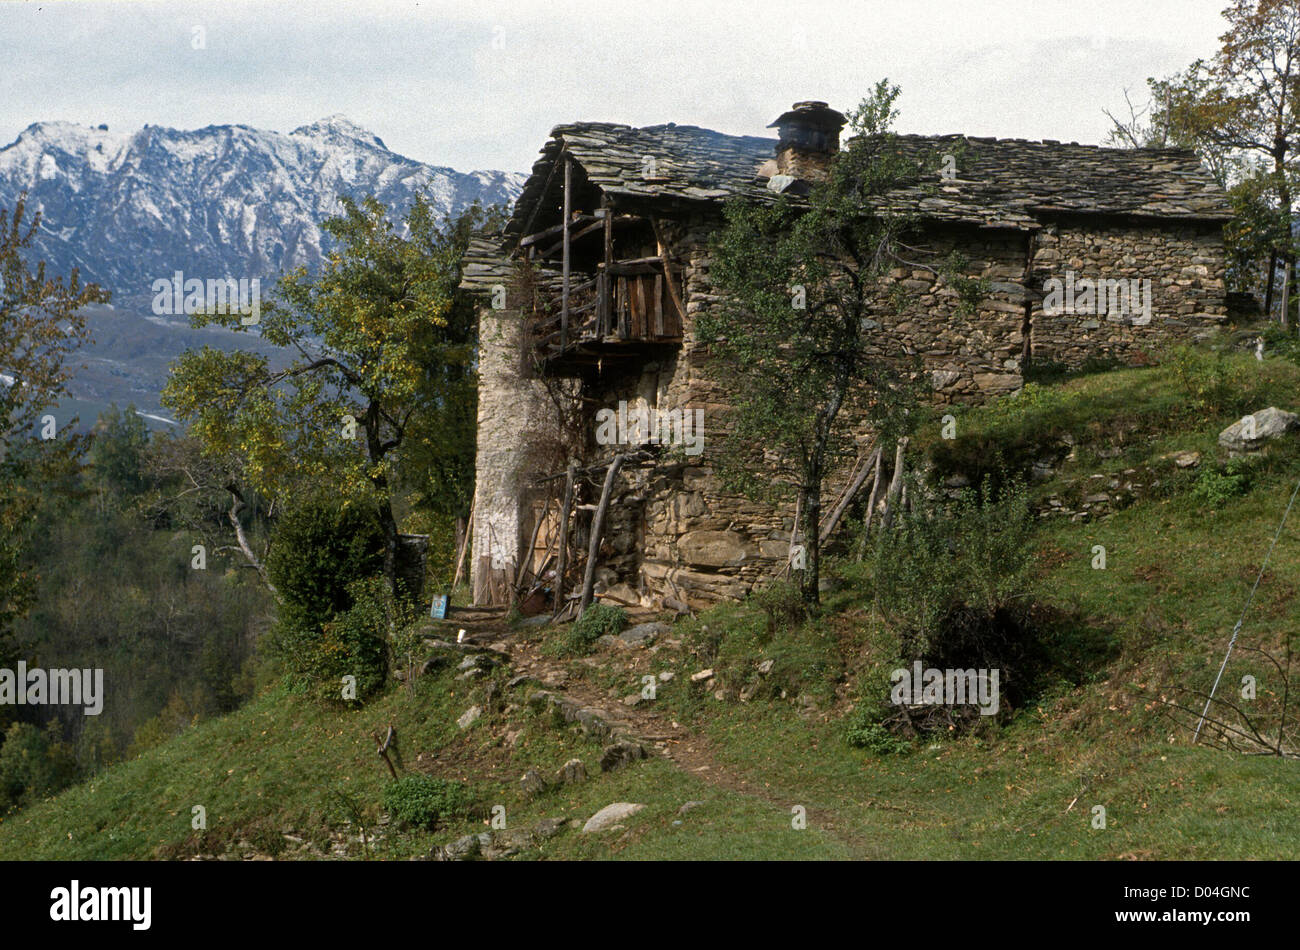 CHARACTERISTIC  DESERTED STONE MOUNTAIN HOMESTEAD- PIAMONTE- ITALY - Stock Image